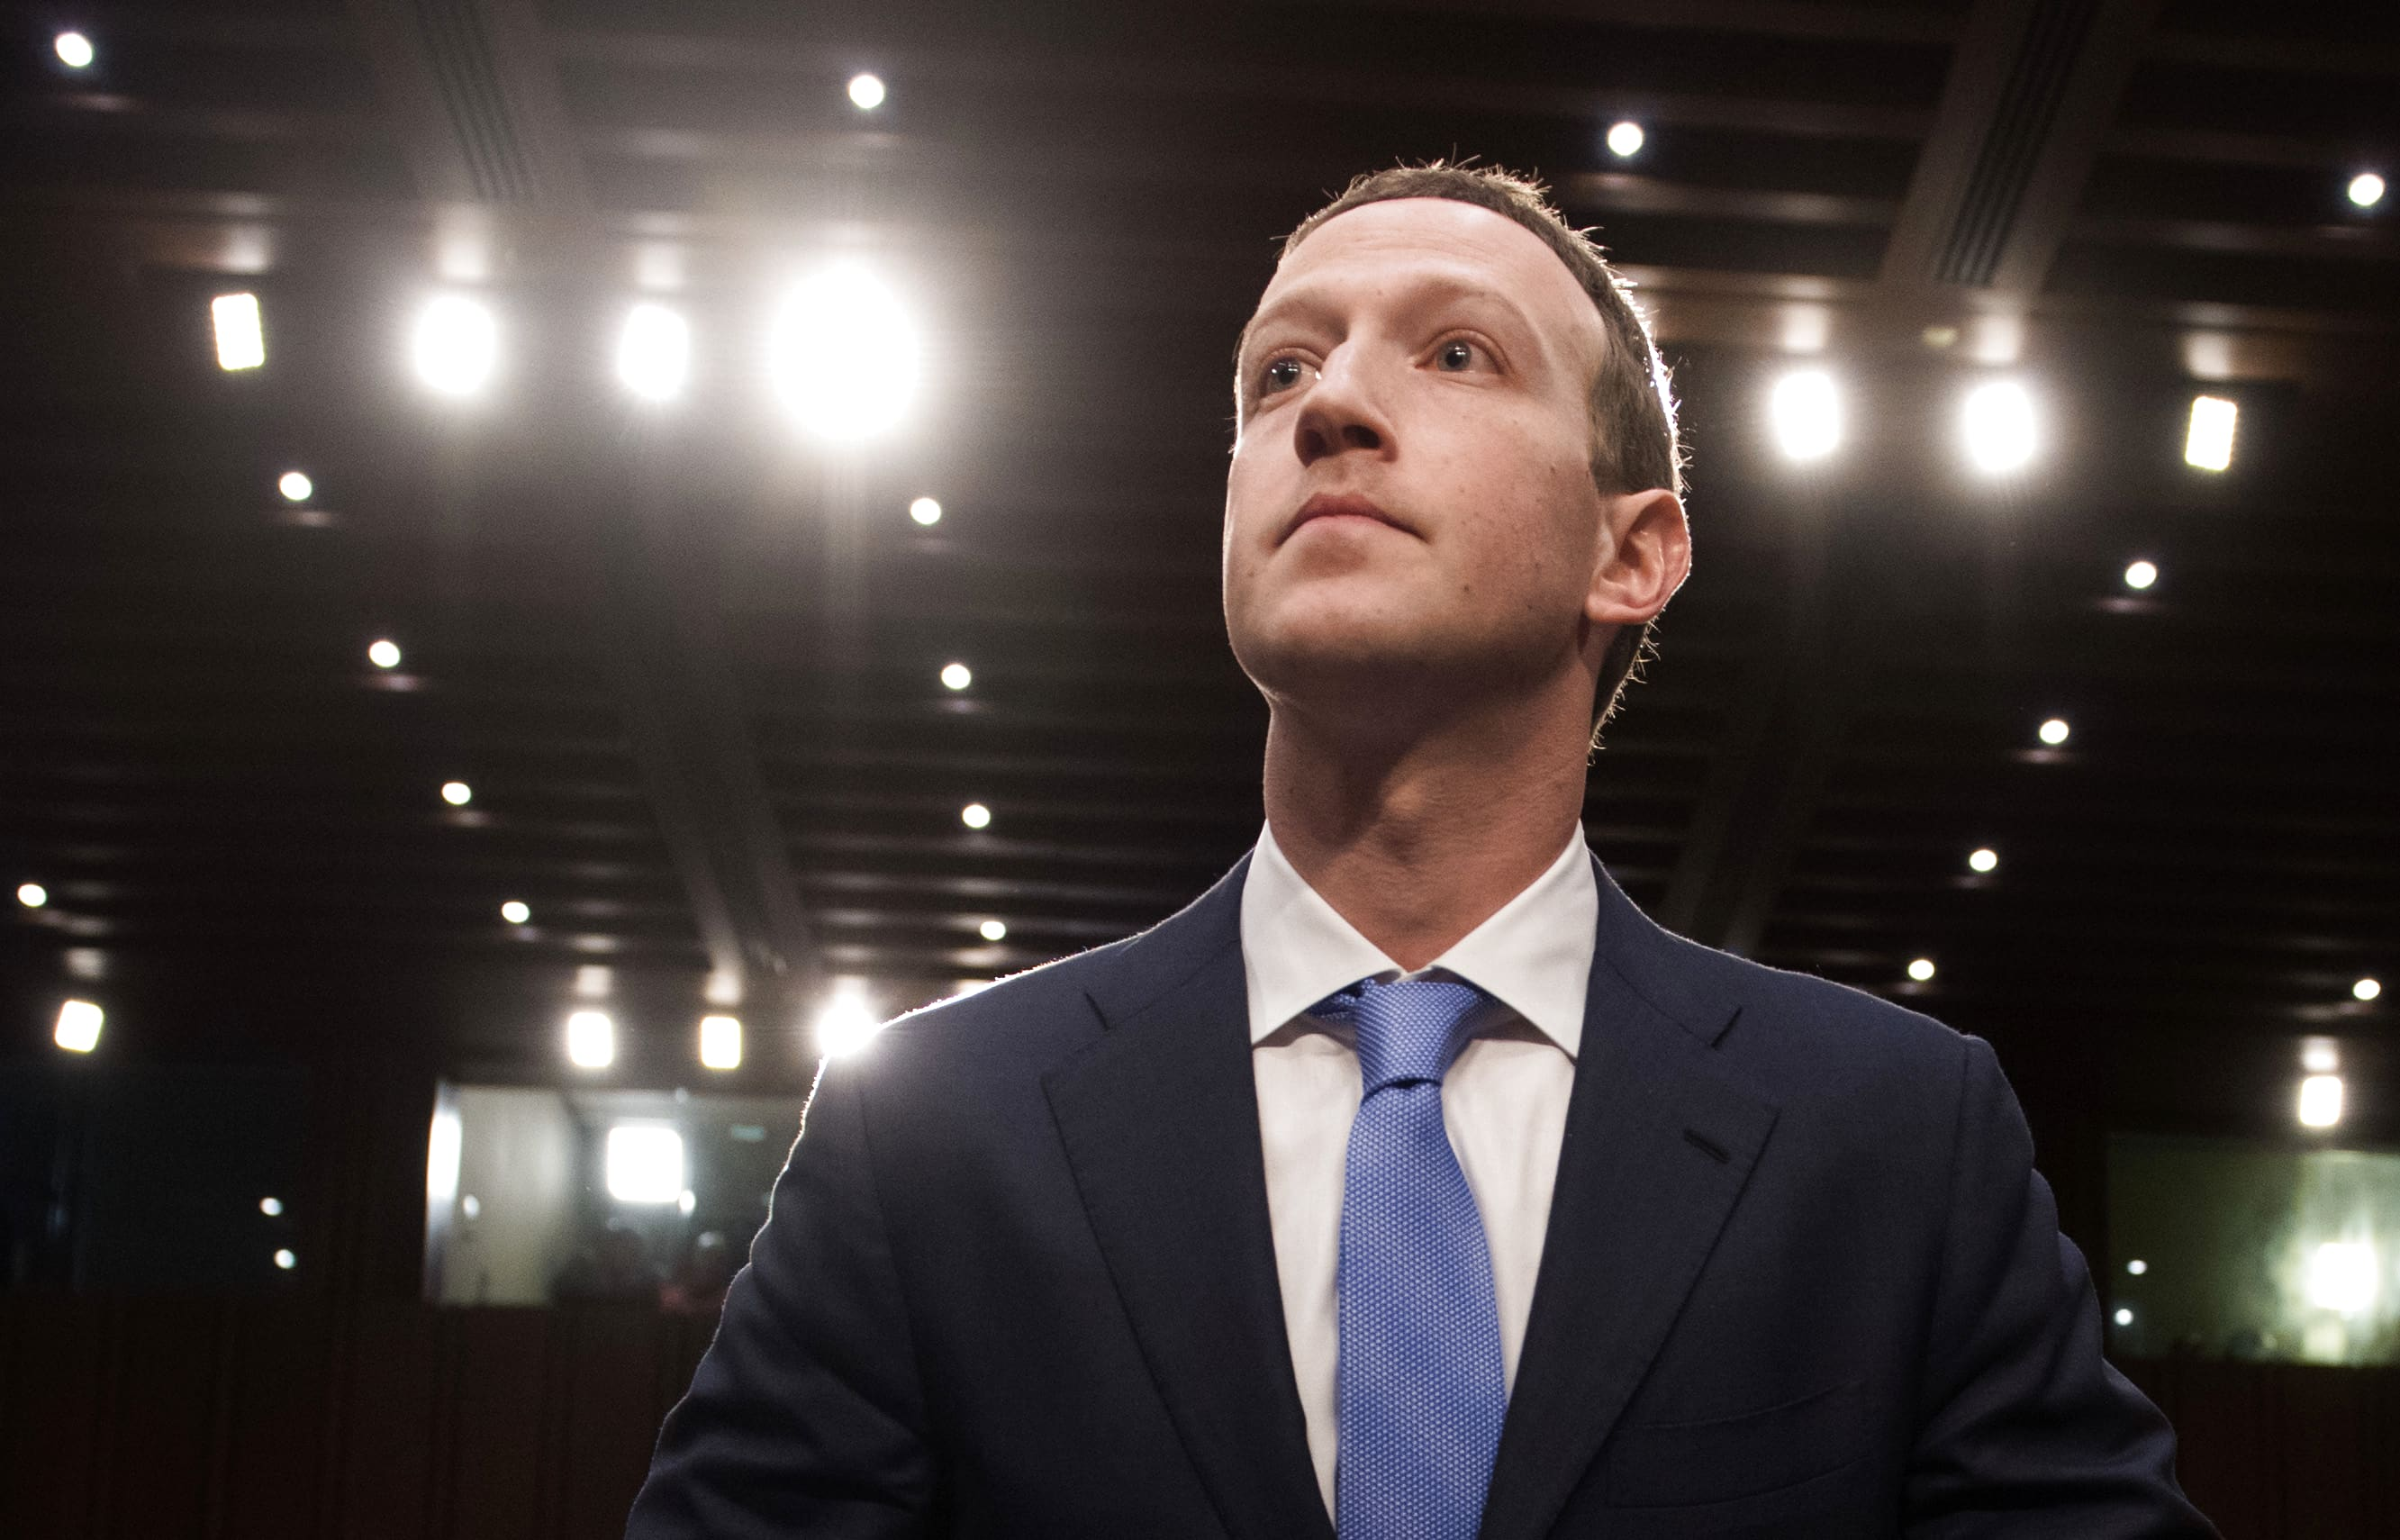 Senator challenges Zuckerberg testimony as 'at best, incomplete' after Facebook audio report